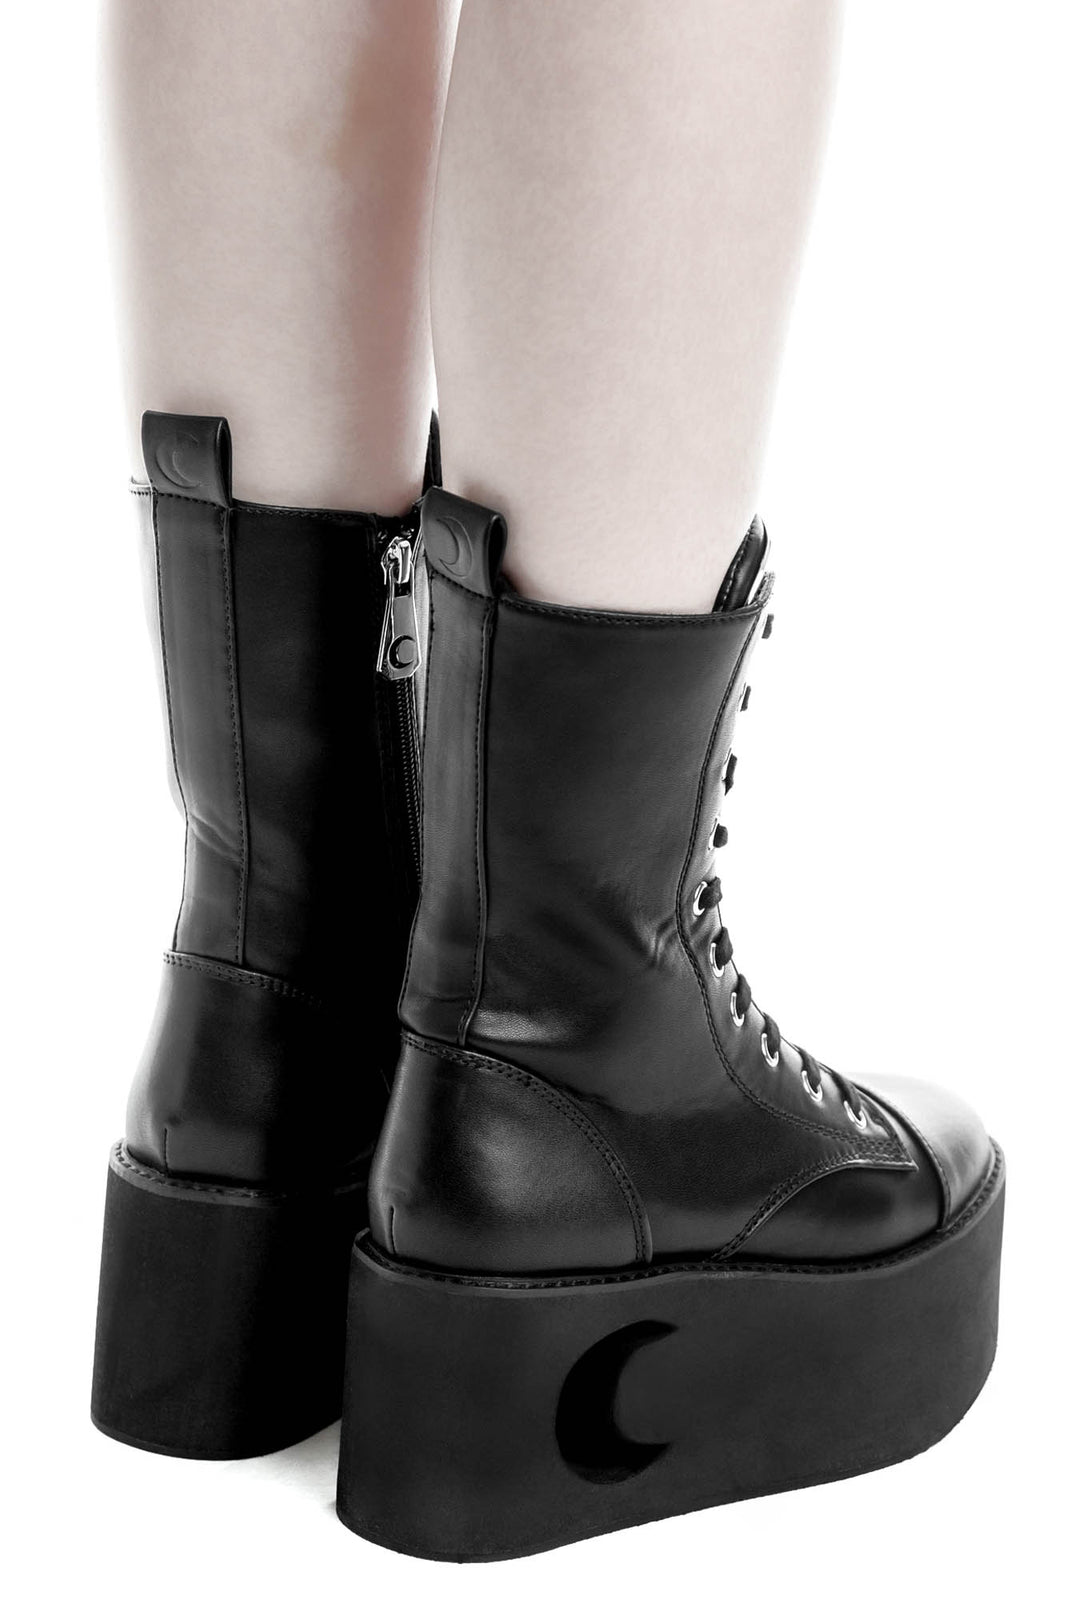 Eternal Eclipse Platform Boots [B]